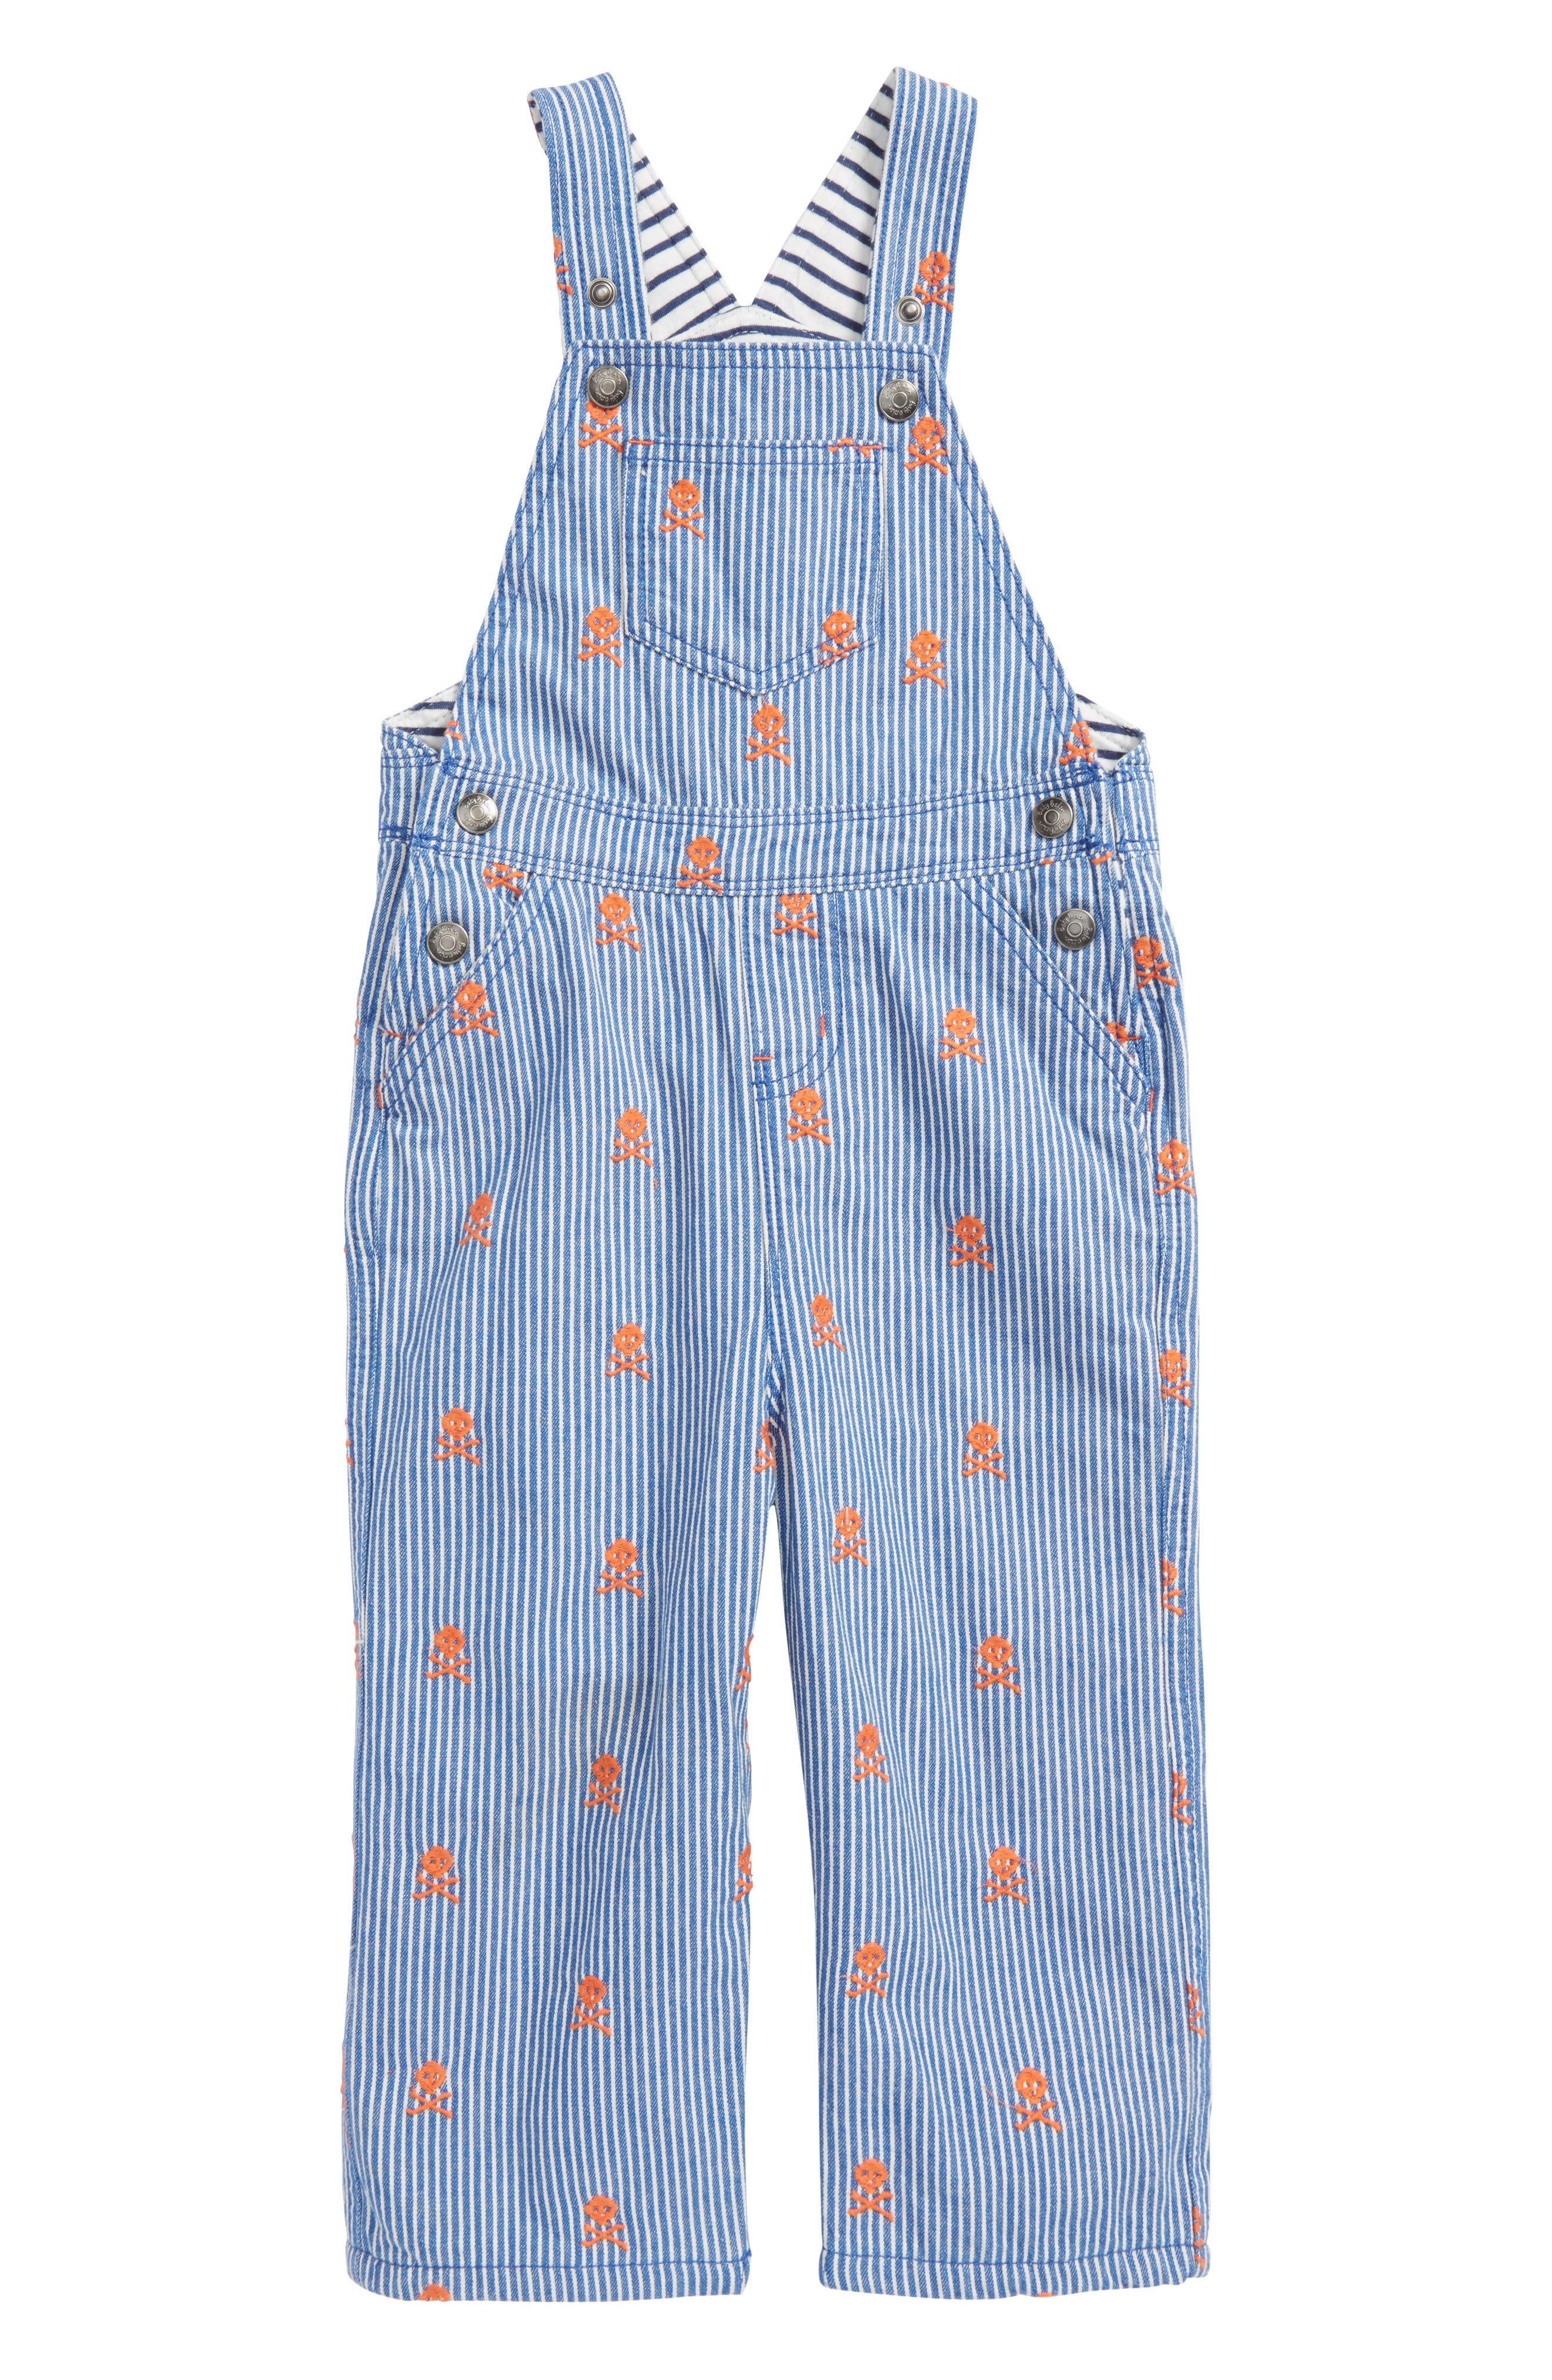 Classic Dungaree Overalls,                         Main,                         color, Duke Ticking Stripe